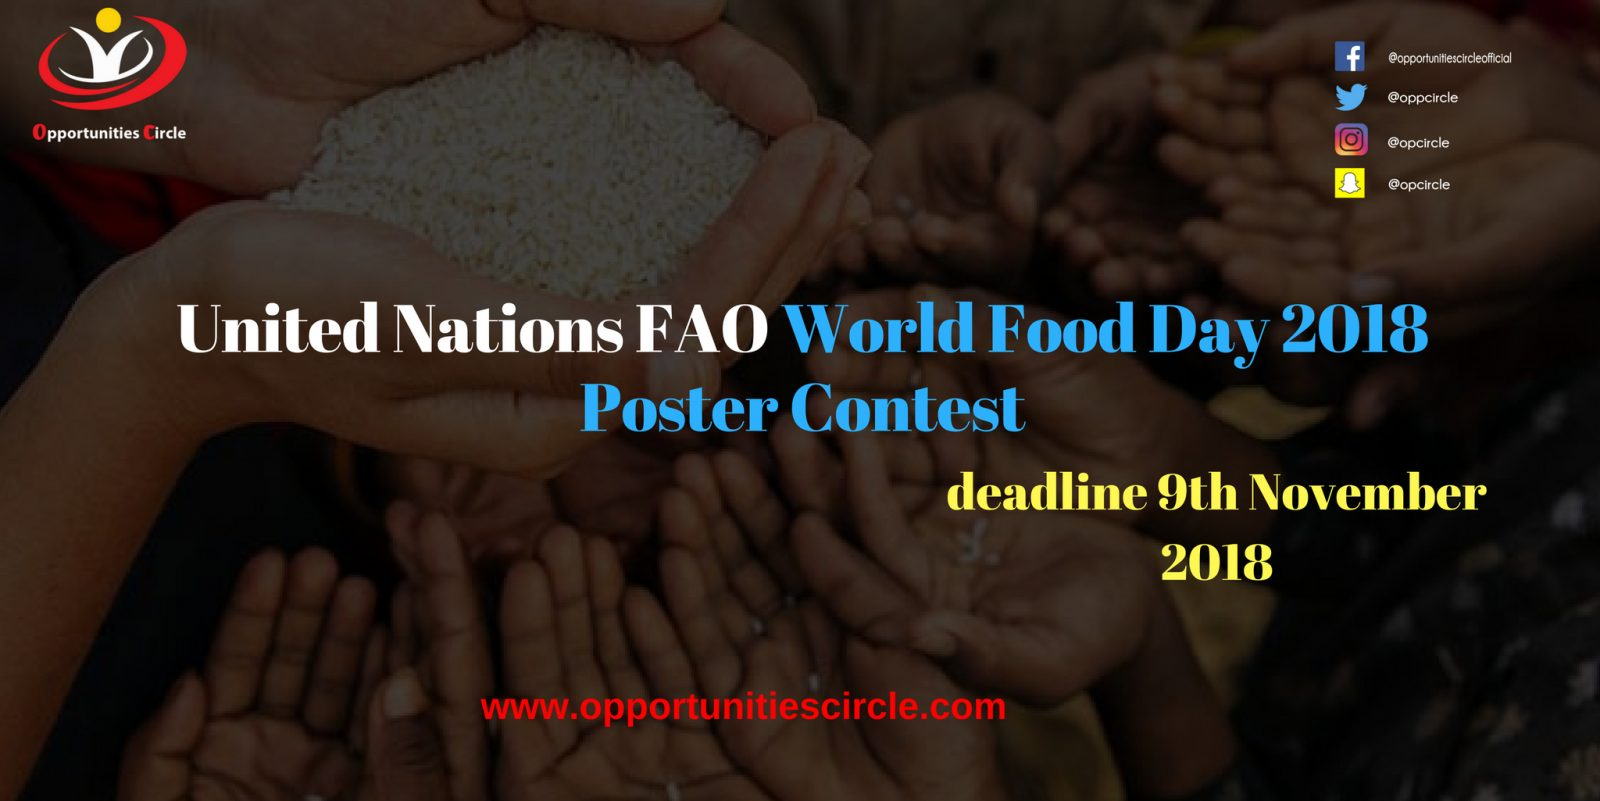 World Food Day Poster Contest 2018 - United Nations FAOWorld Food Day 2018 Poster Contest